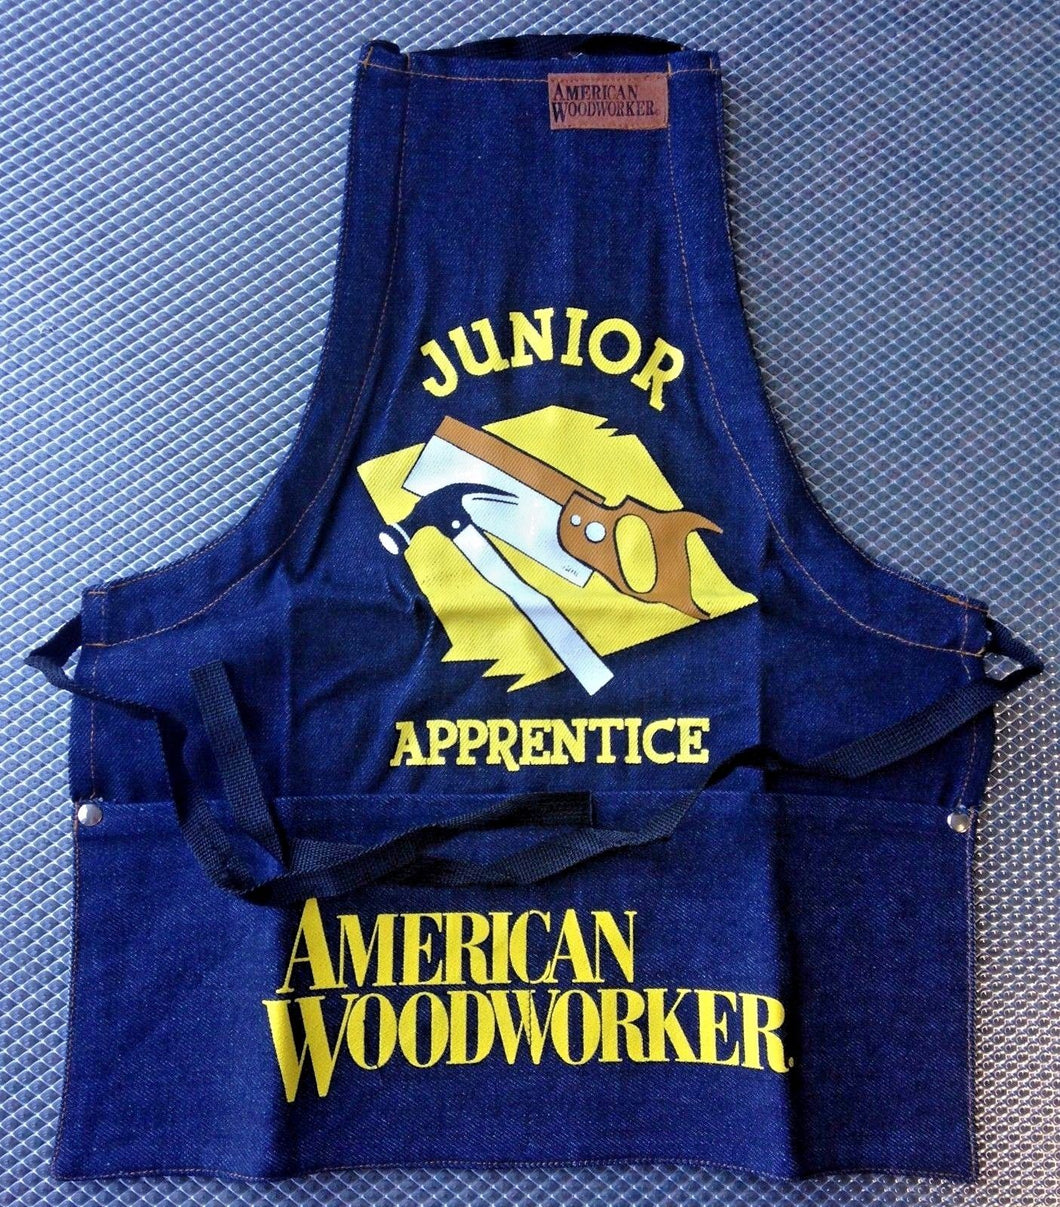 American Woodworker 113 JR. Bib Shop Apron 18